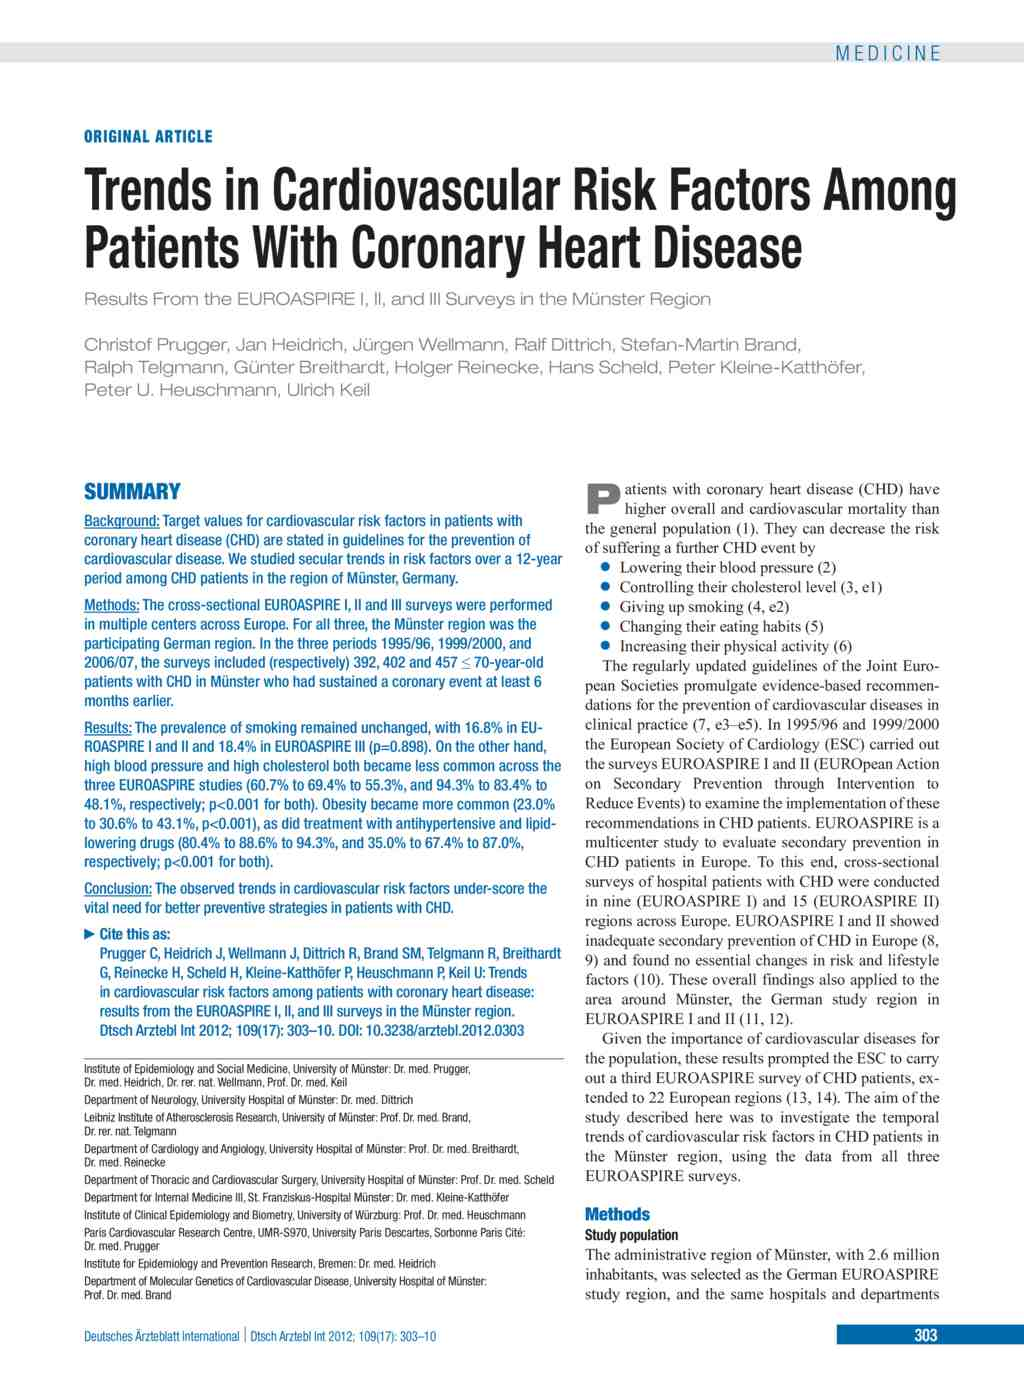 Trends in Cardiovascular Risk Factors Among Patients With